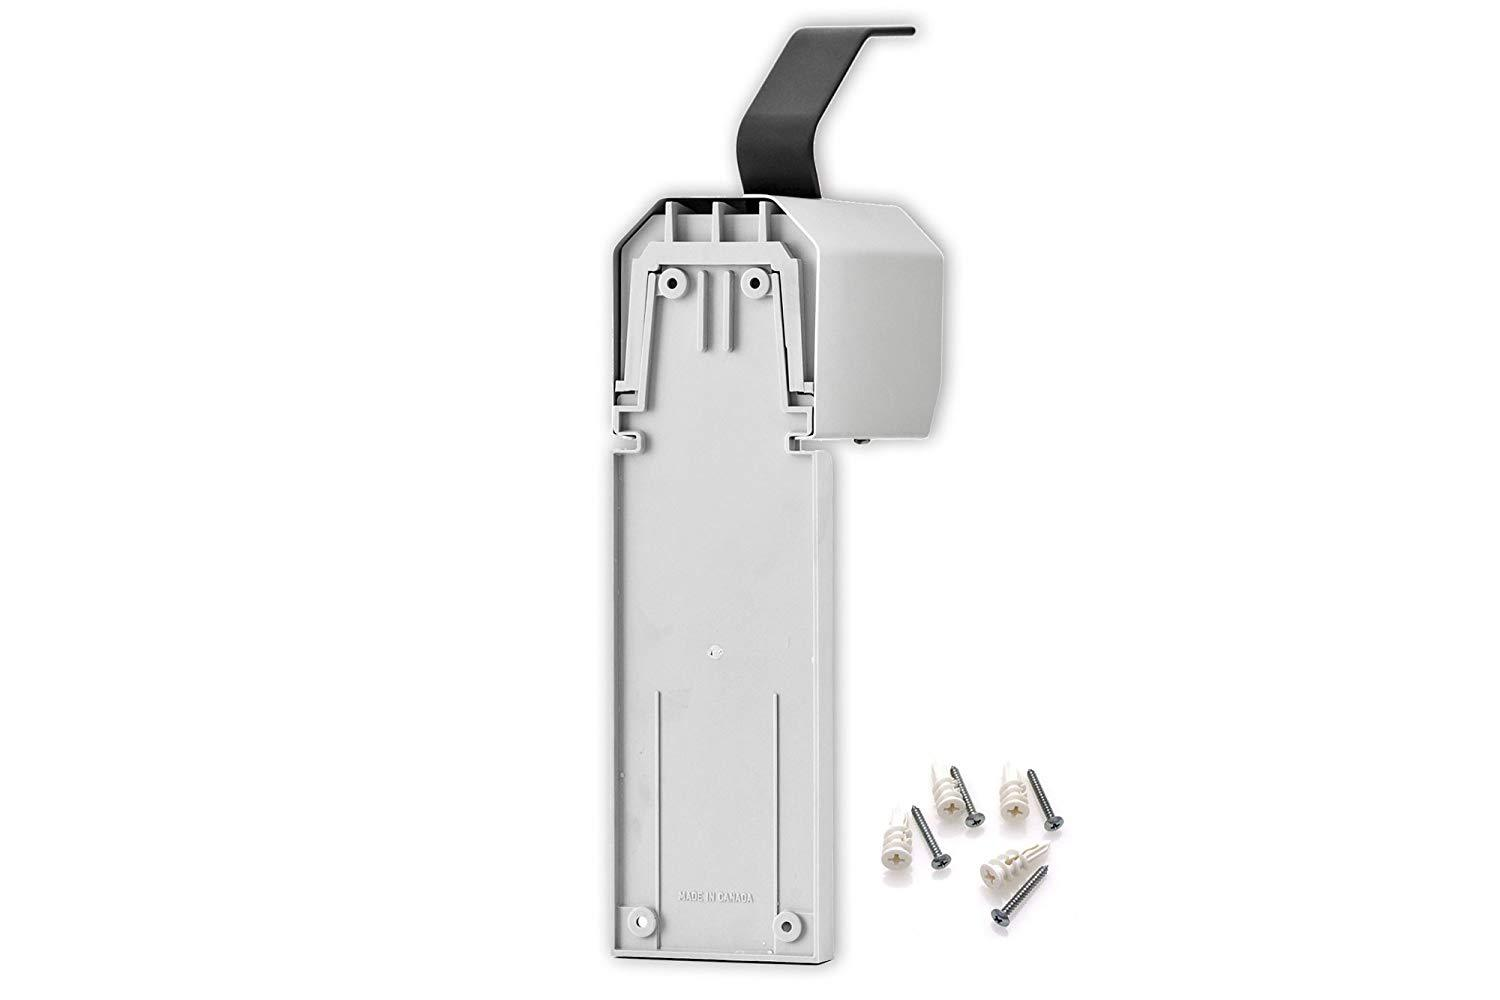 Grip Clean Wall Dispenser